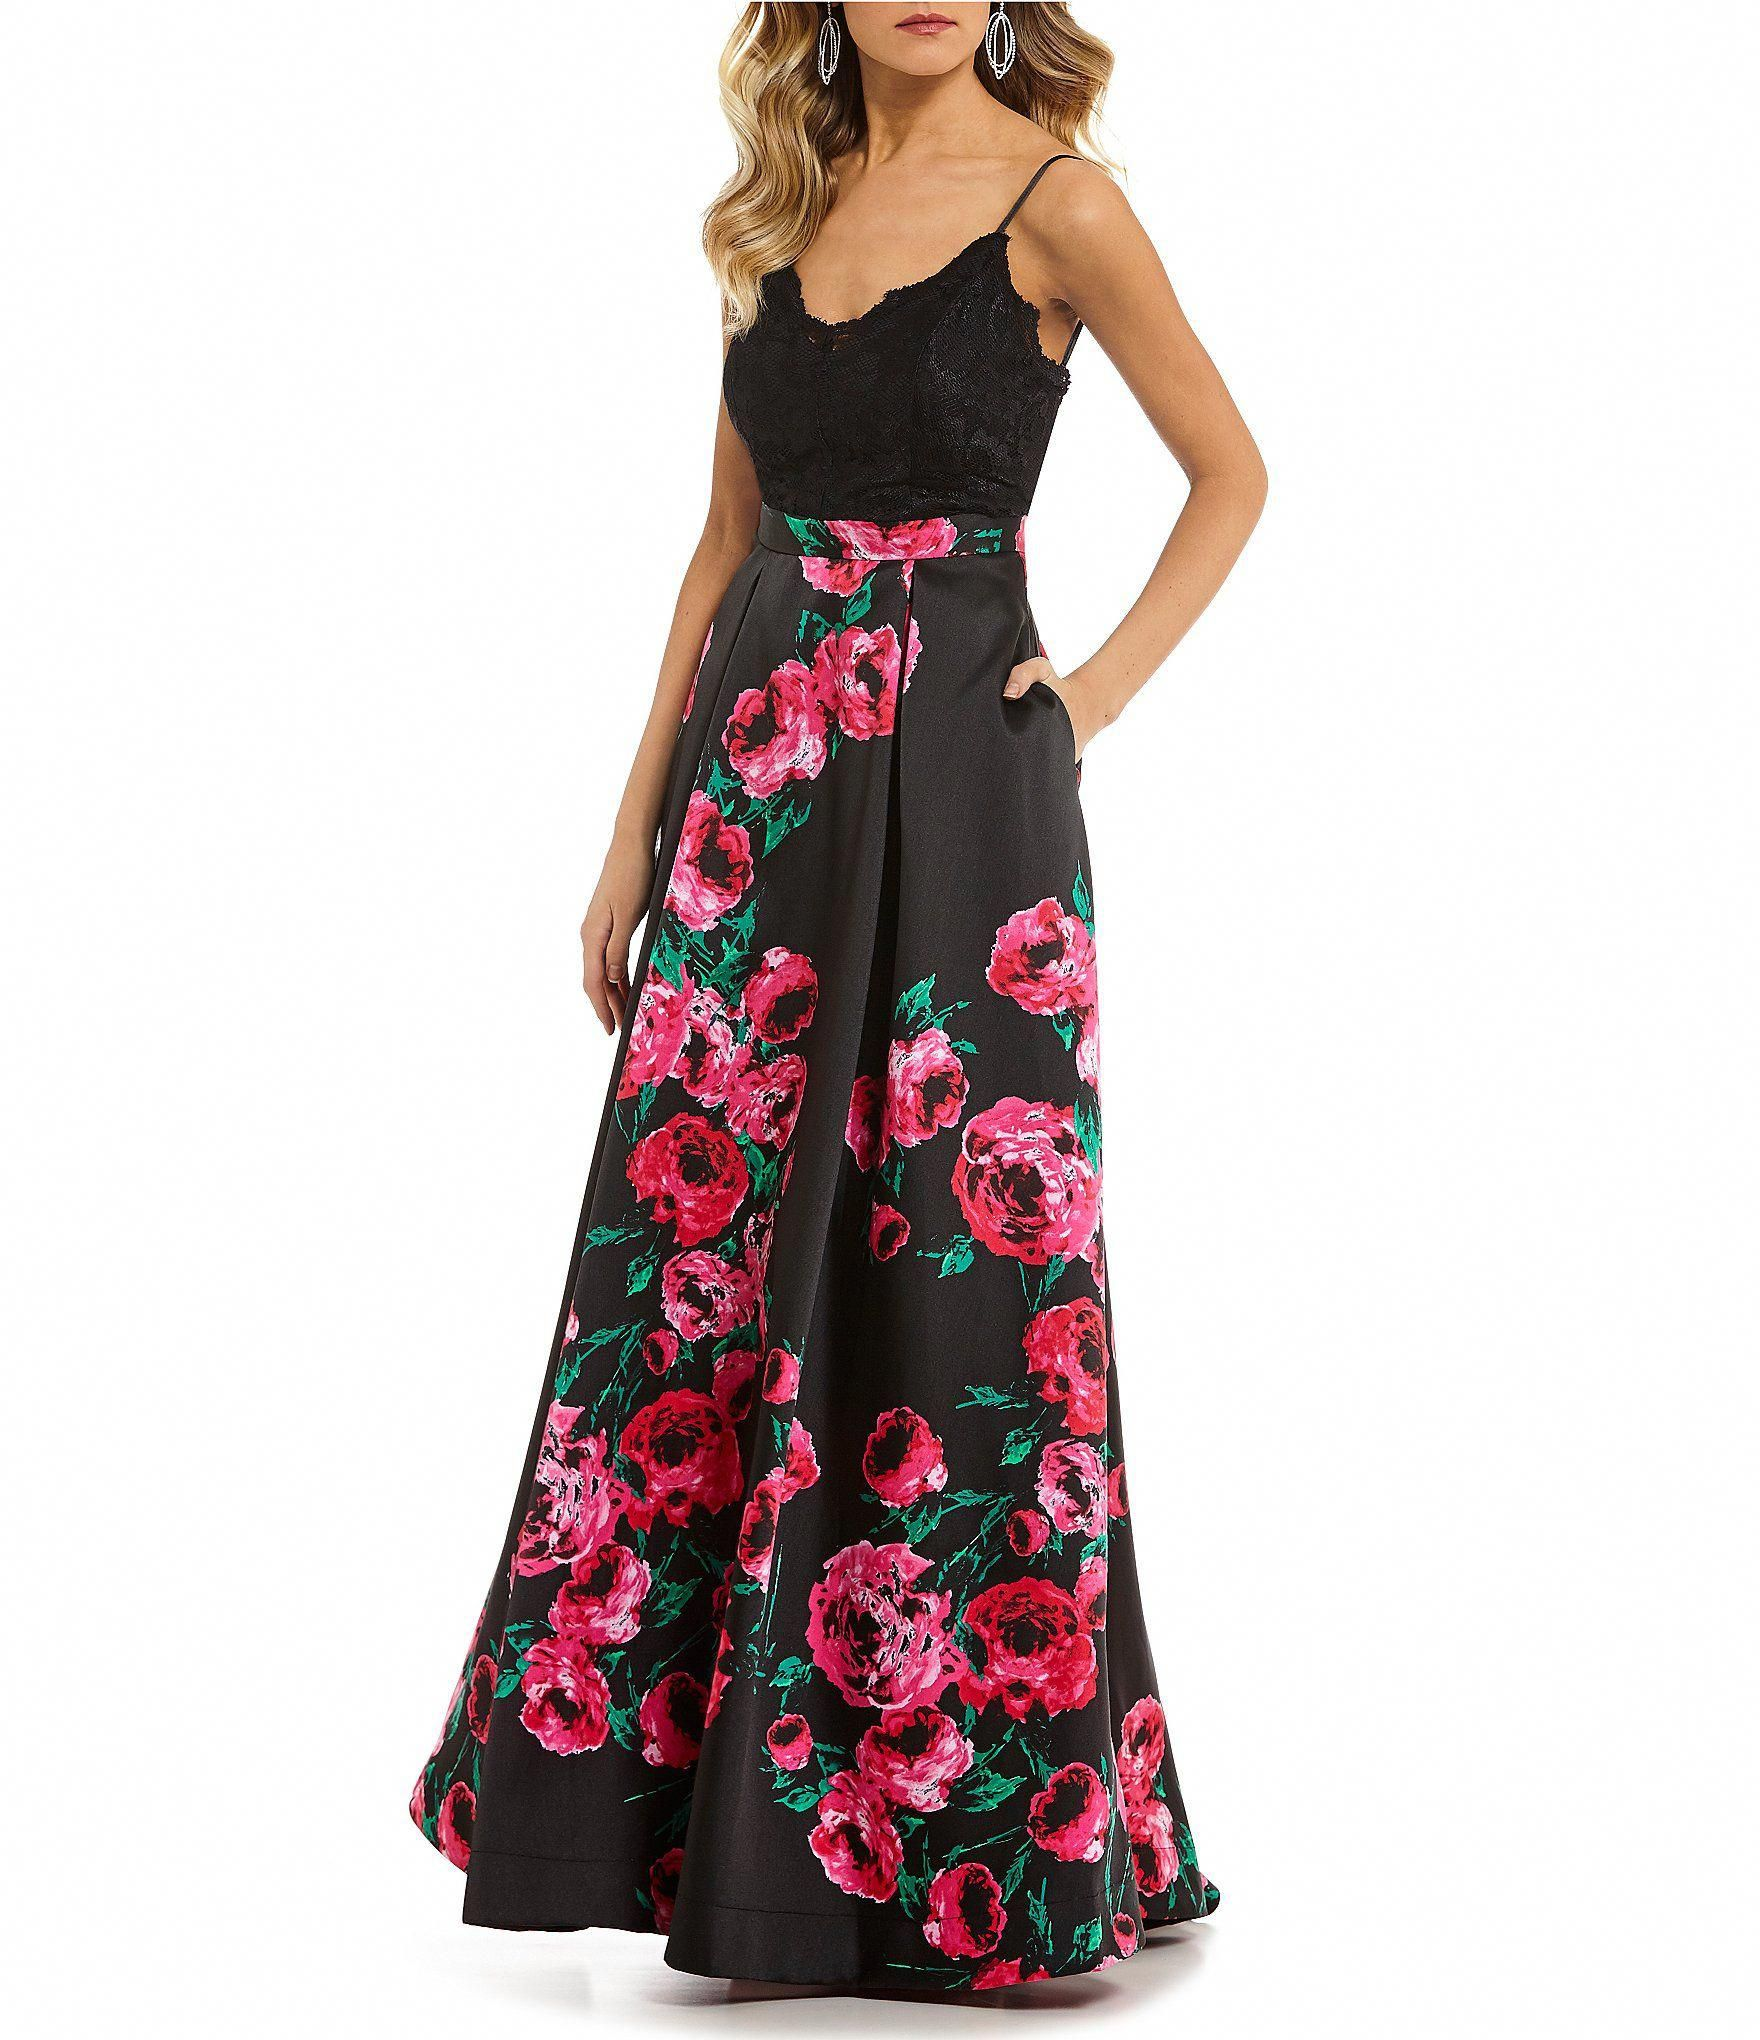 fdc9687a7e7 Shop for B. Darlin Lace Bodice Floral Ball Gown at Dillards.com. Visit  Dillards.com to find clothing